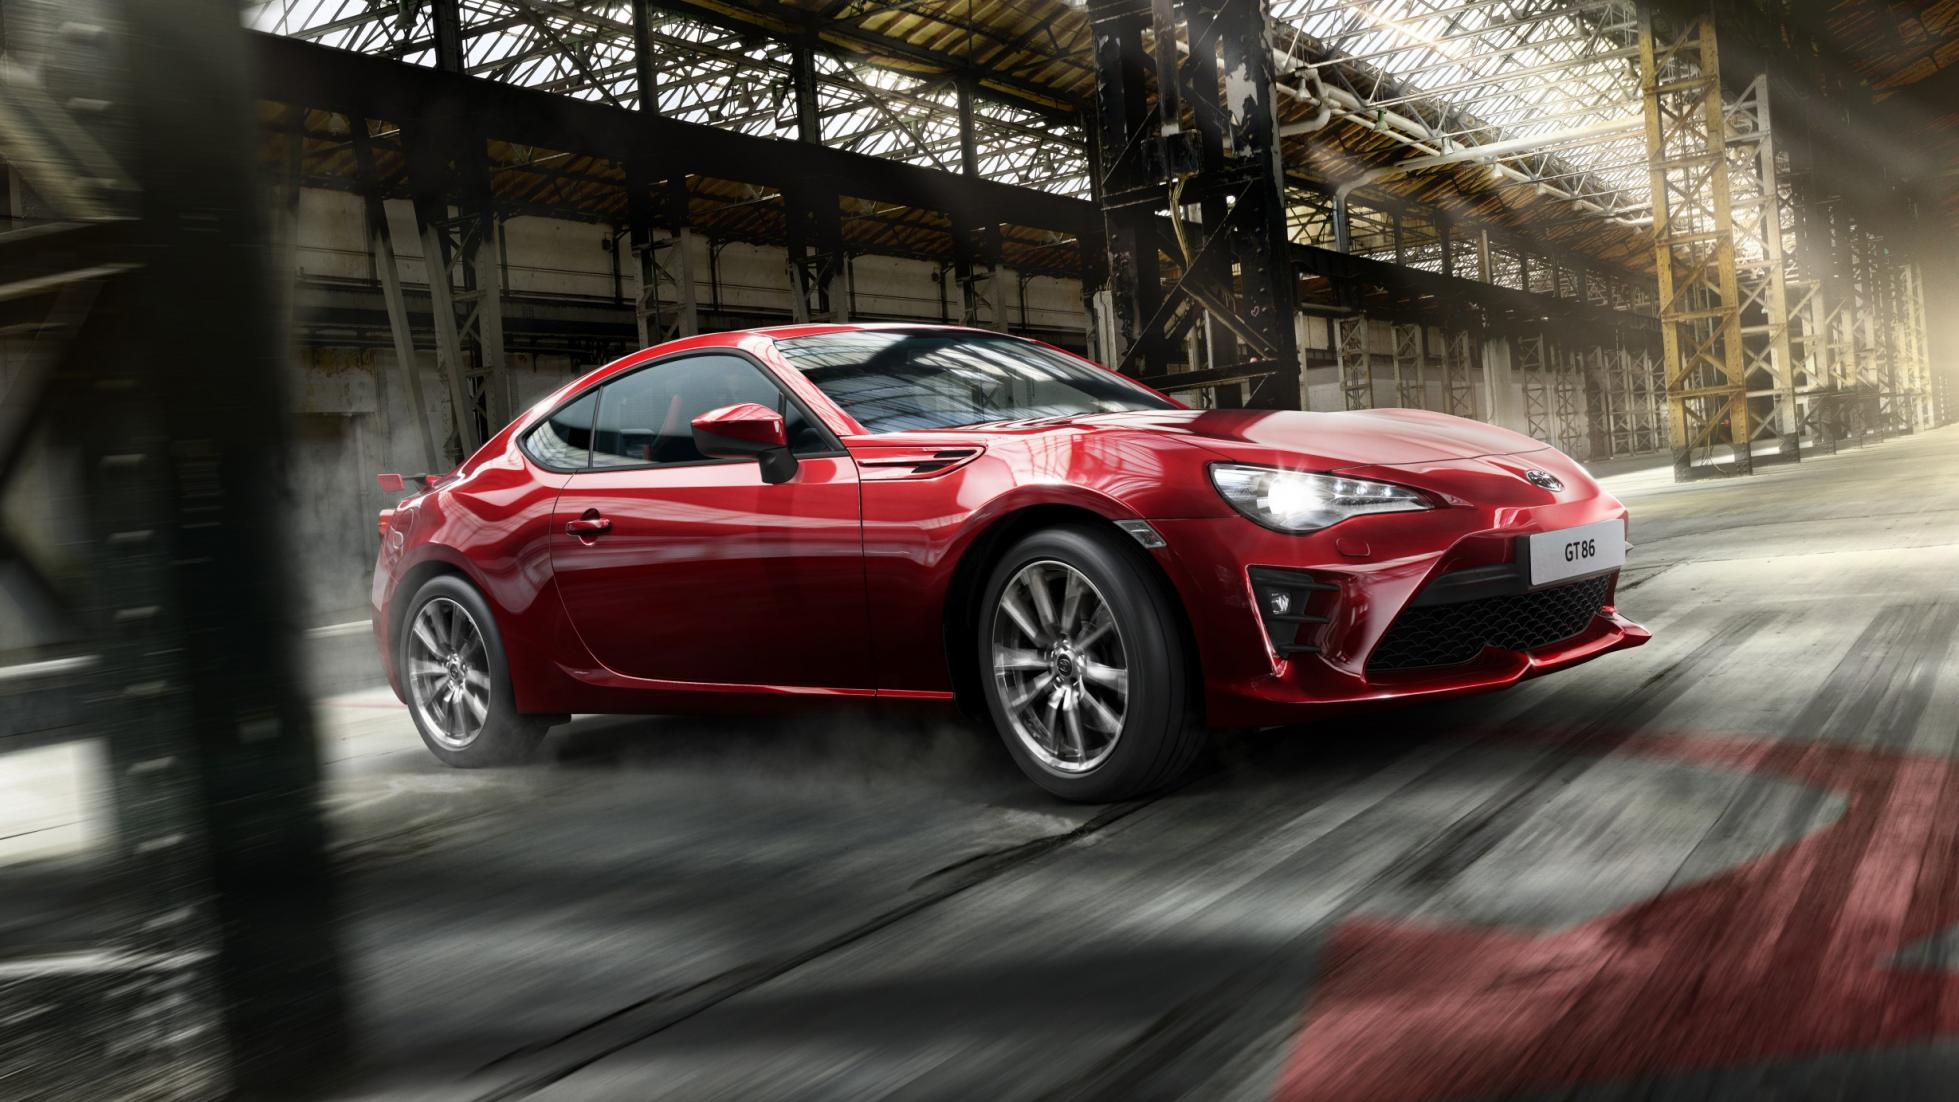 2017 toyota gt 86 hd cars 4k wallpapers images backgrounds photos and pictures. Black Bedroom Furniture Sets. Home Design Ideas